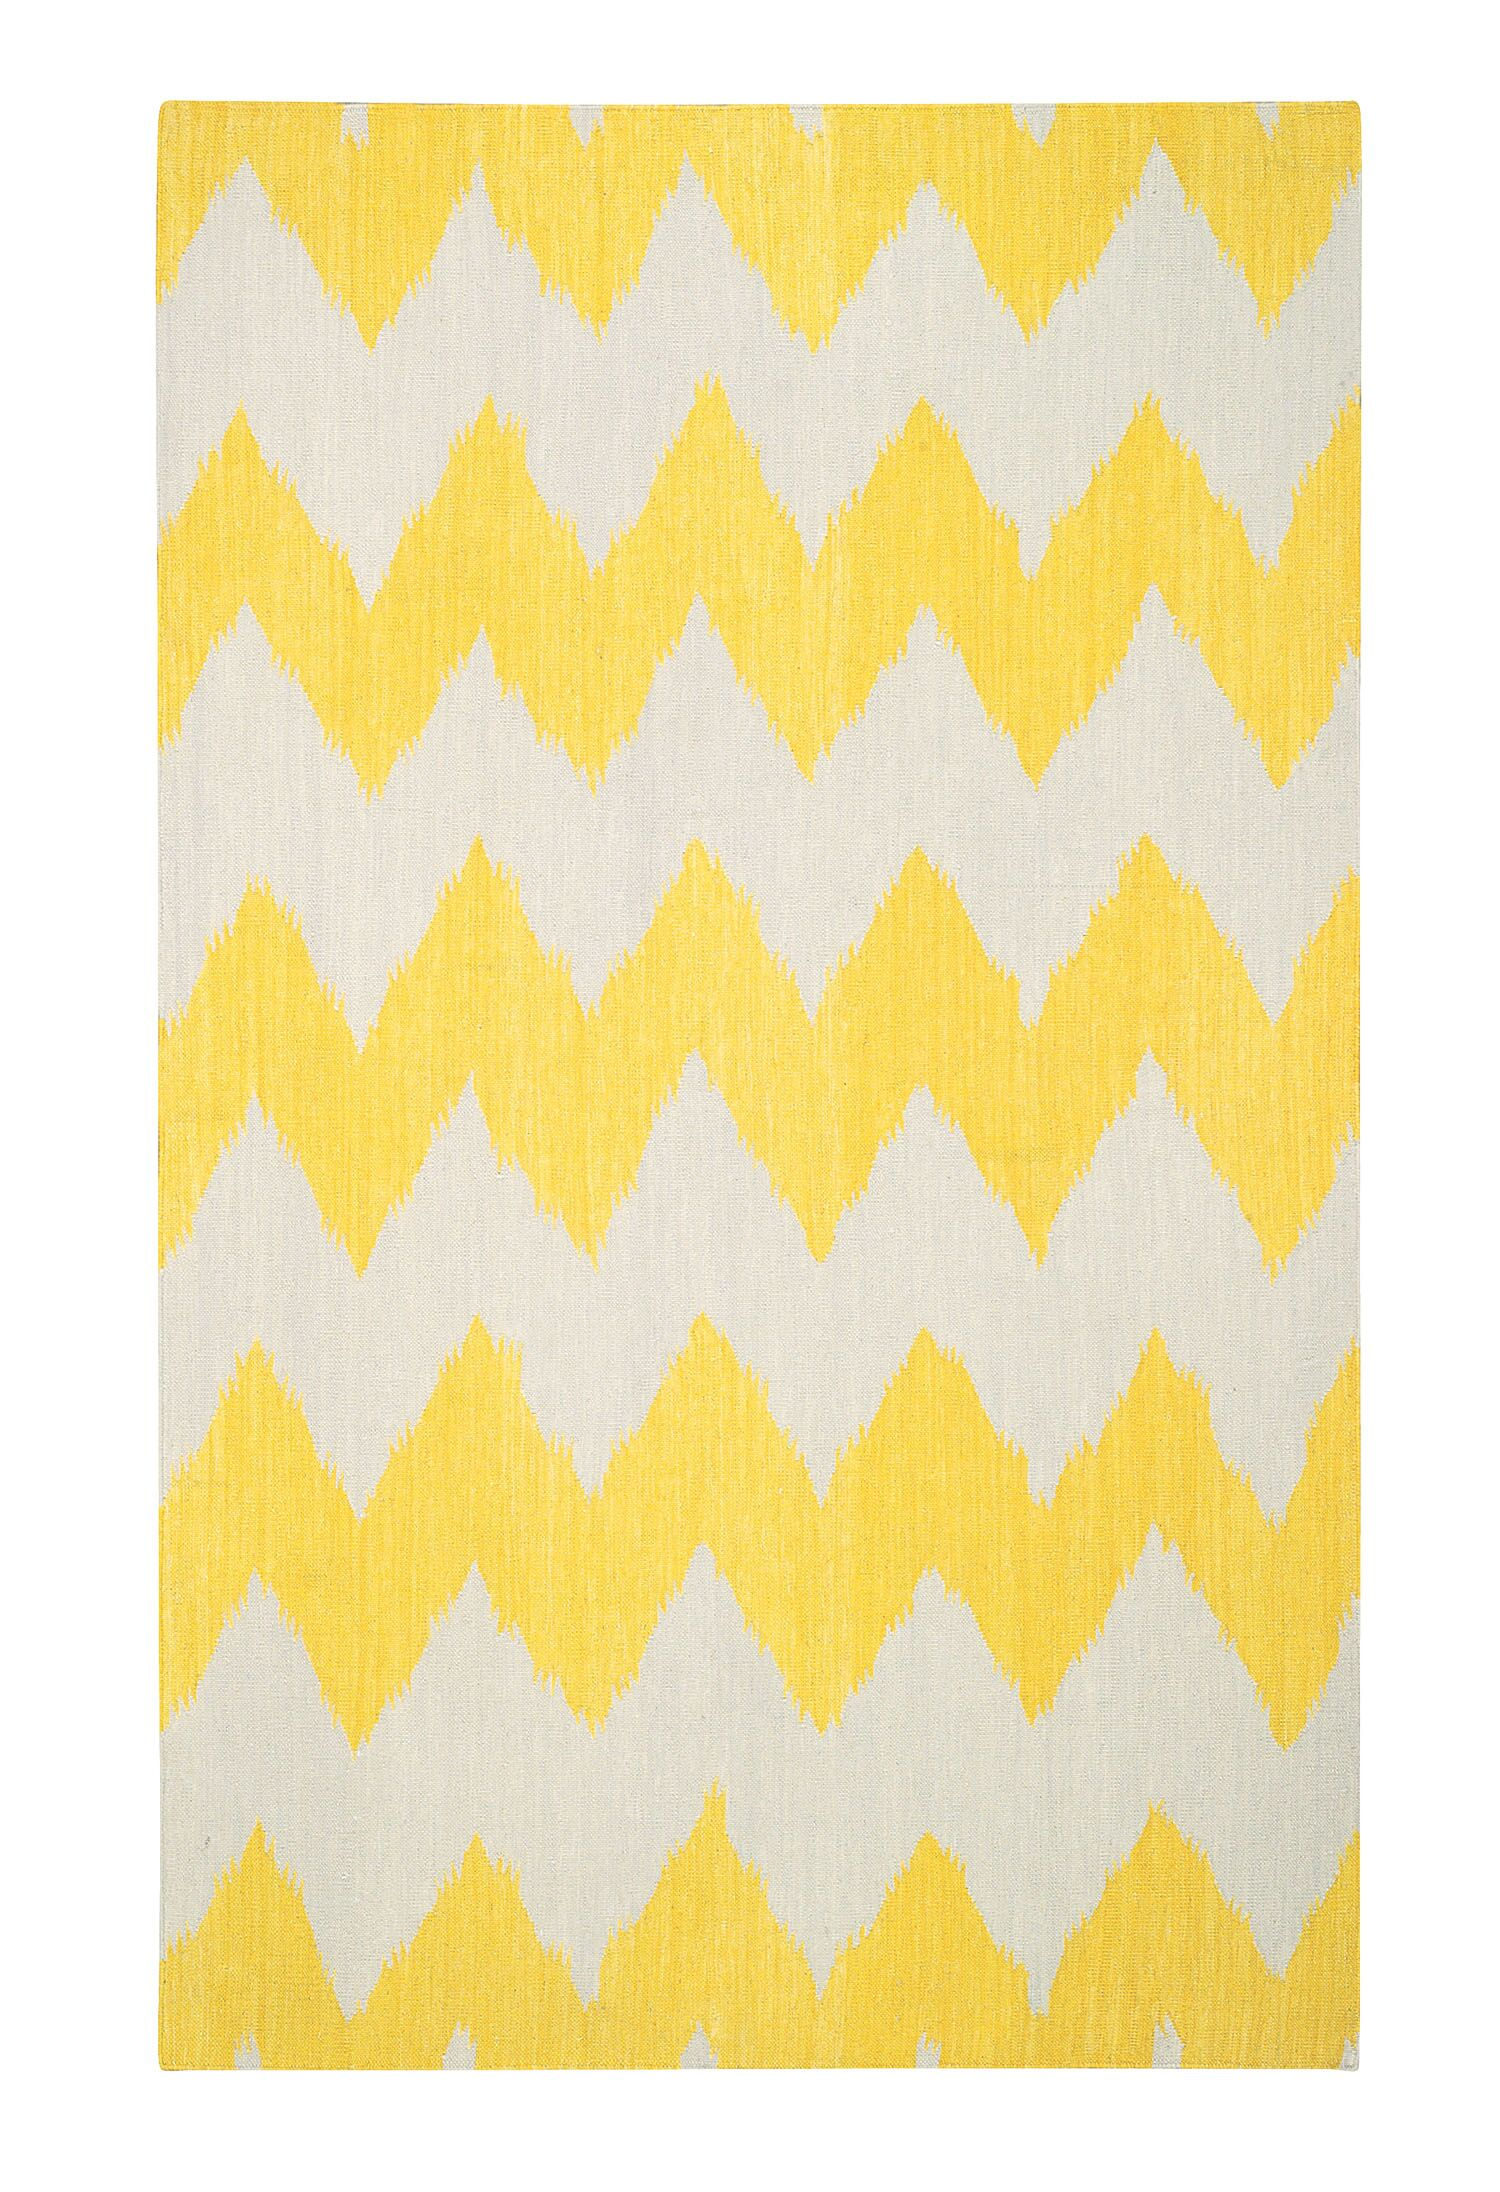 Insignia Leo Sun Yellow/Cream Area Rug Rug Size: Rectangle 8' x 11'